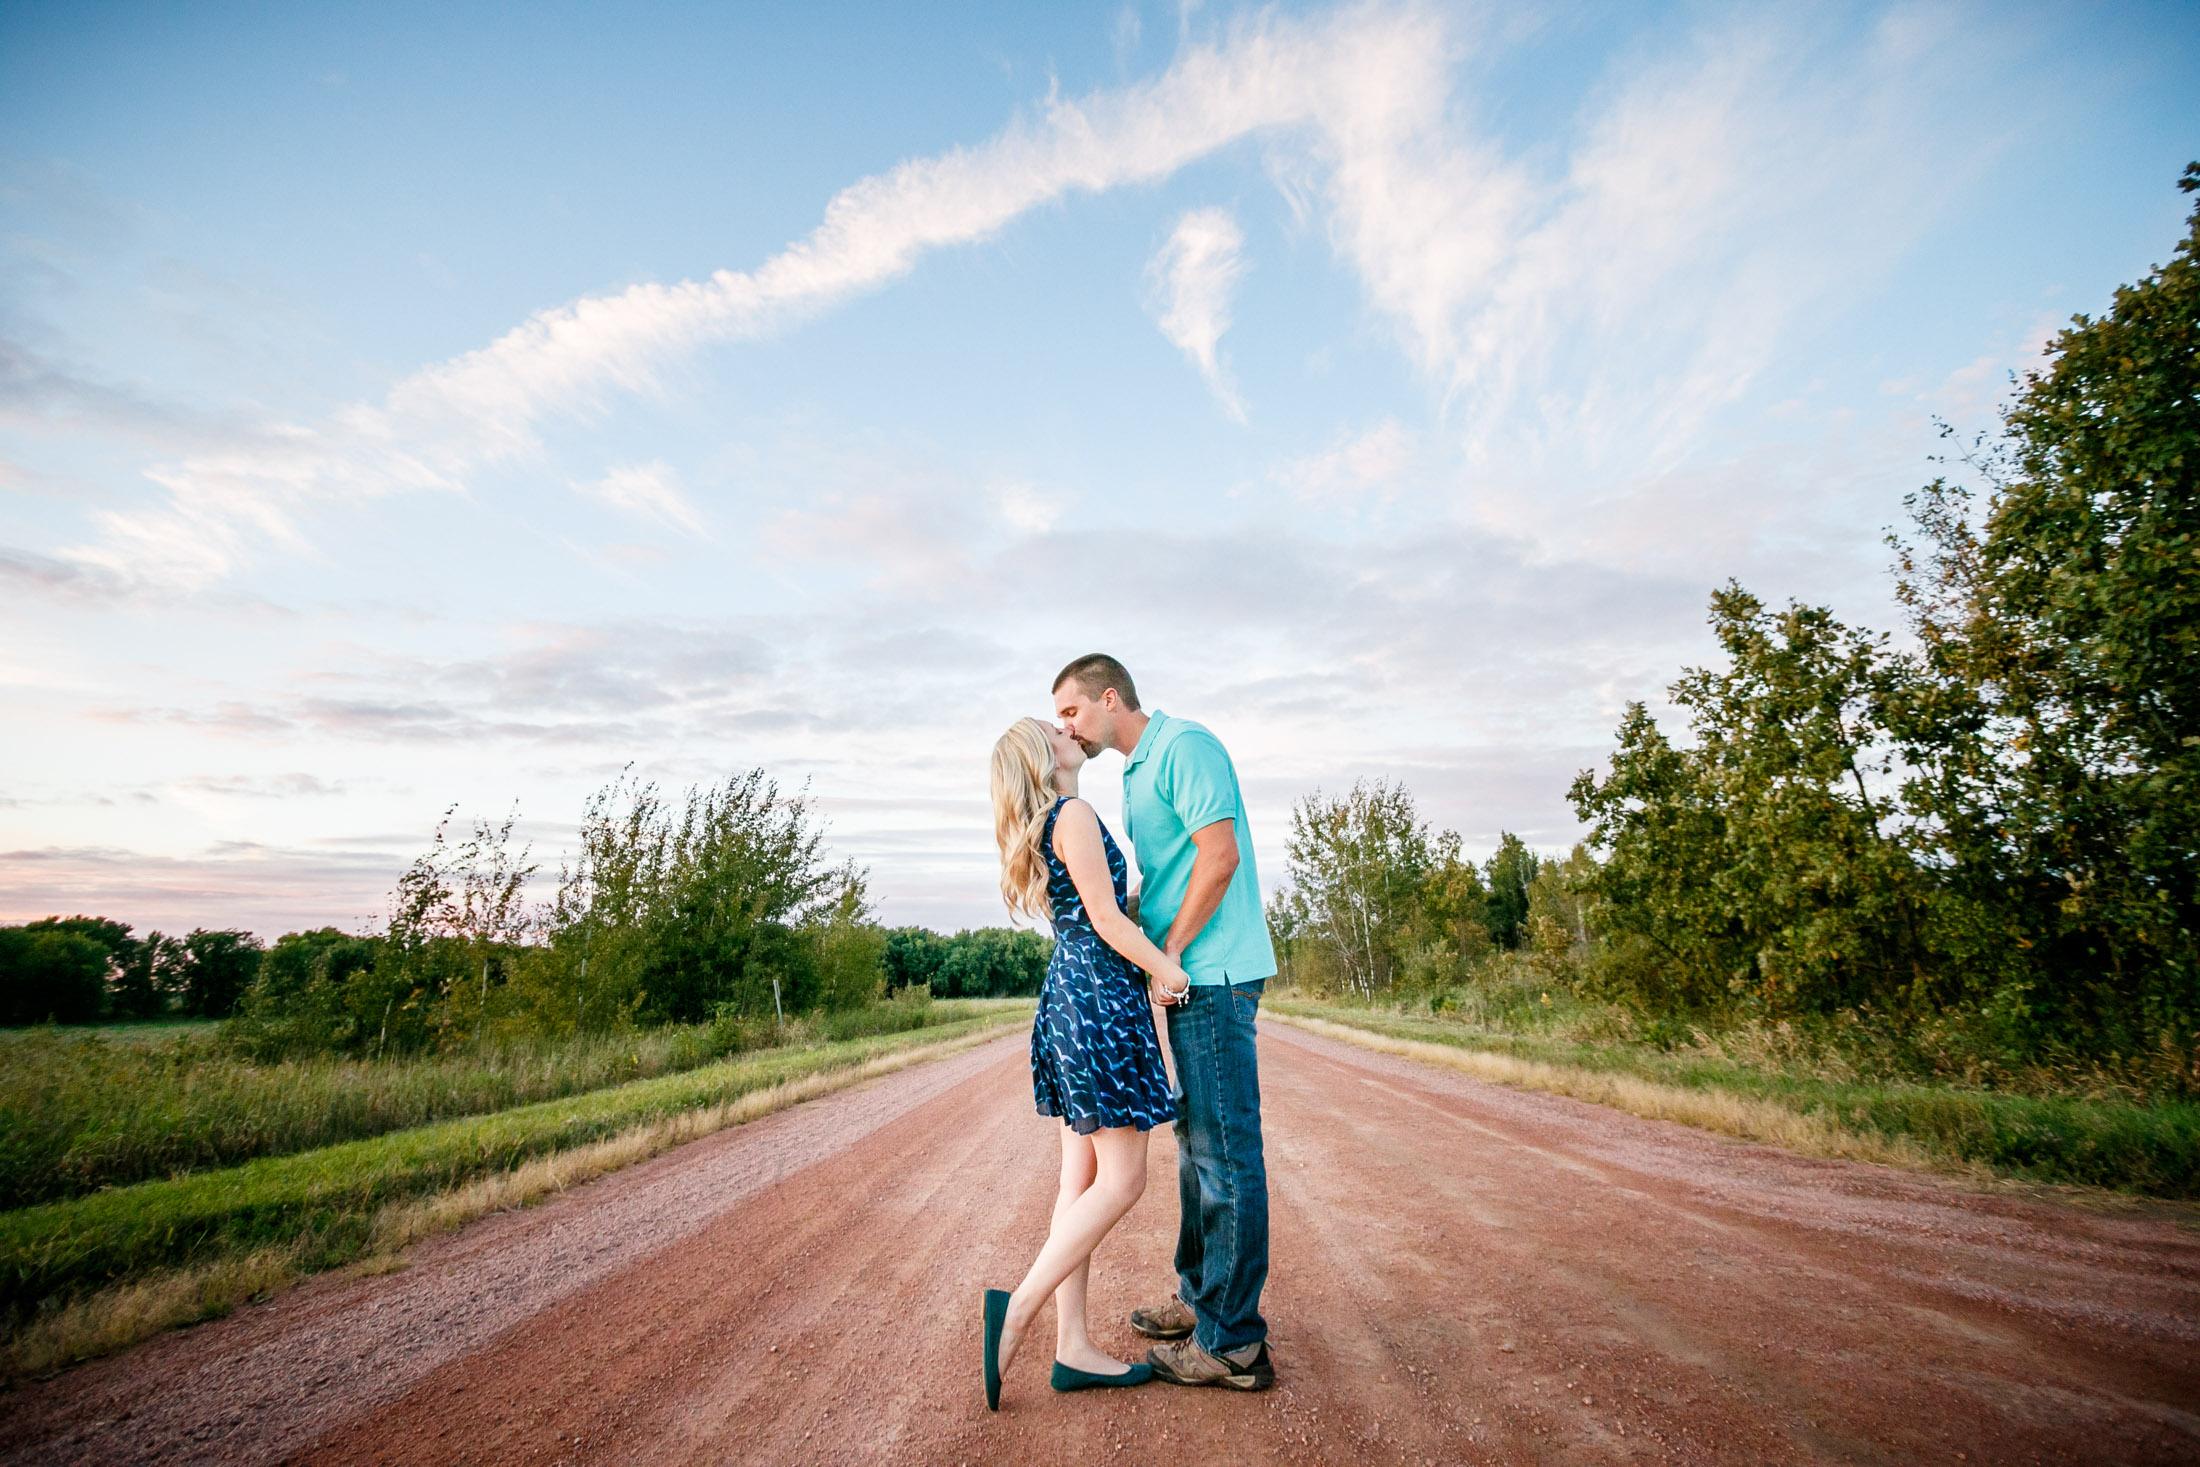 engagement-photo-blue-sky-dirt-road-country-wedding-photographer-adam-shea-photography-green bay-appleton-neenah-oshkosh-fond-du-lac-wisconsin-photos.jpg